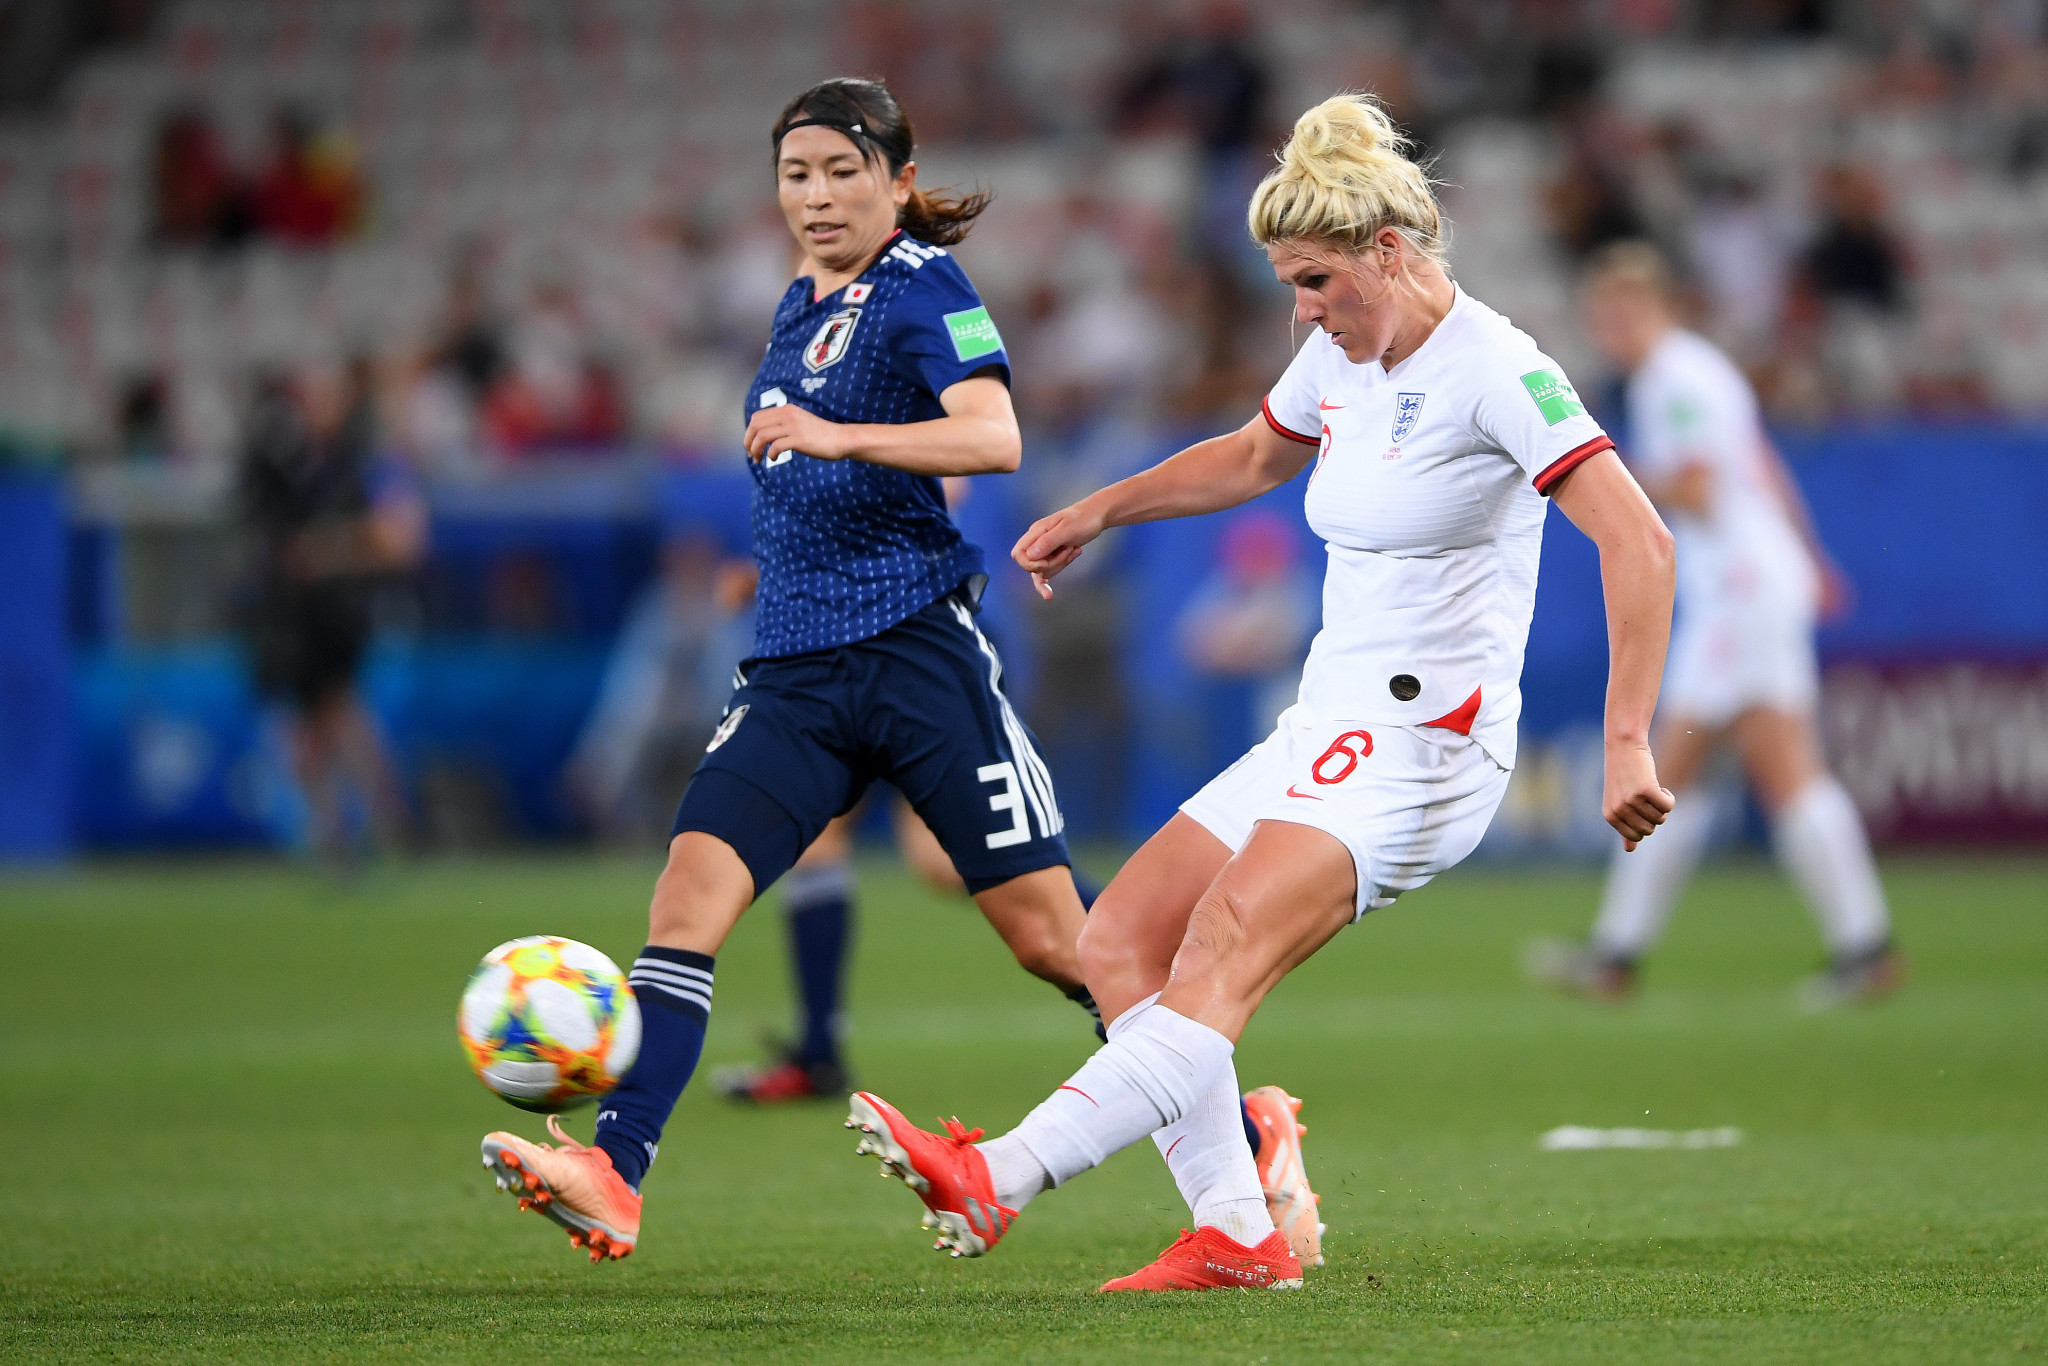 England avenge 2015 semi-final defeat with victory against Japan at 2019 FIFA World Cup